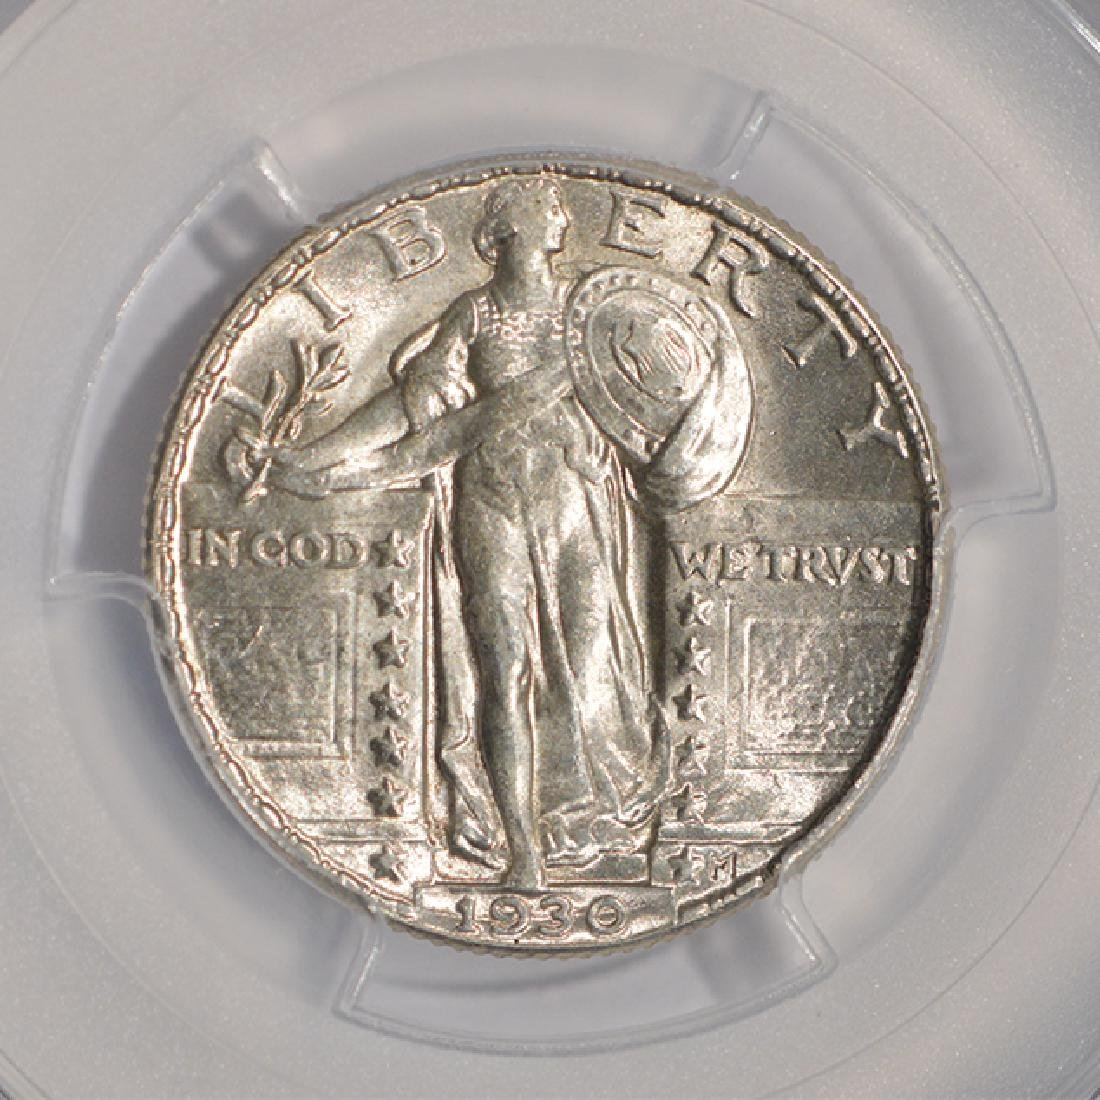 1930 Standing Liberty Quarter Coin PCGS MS63 - 3